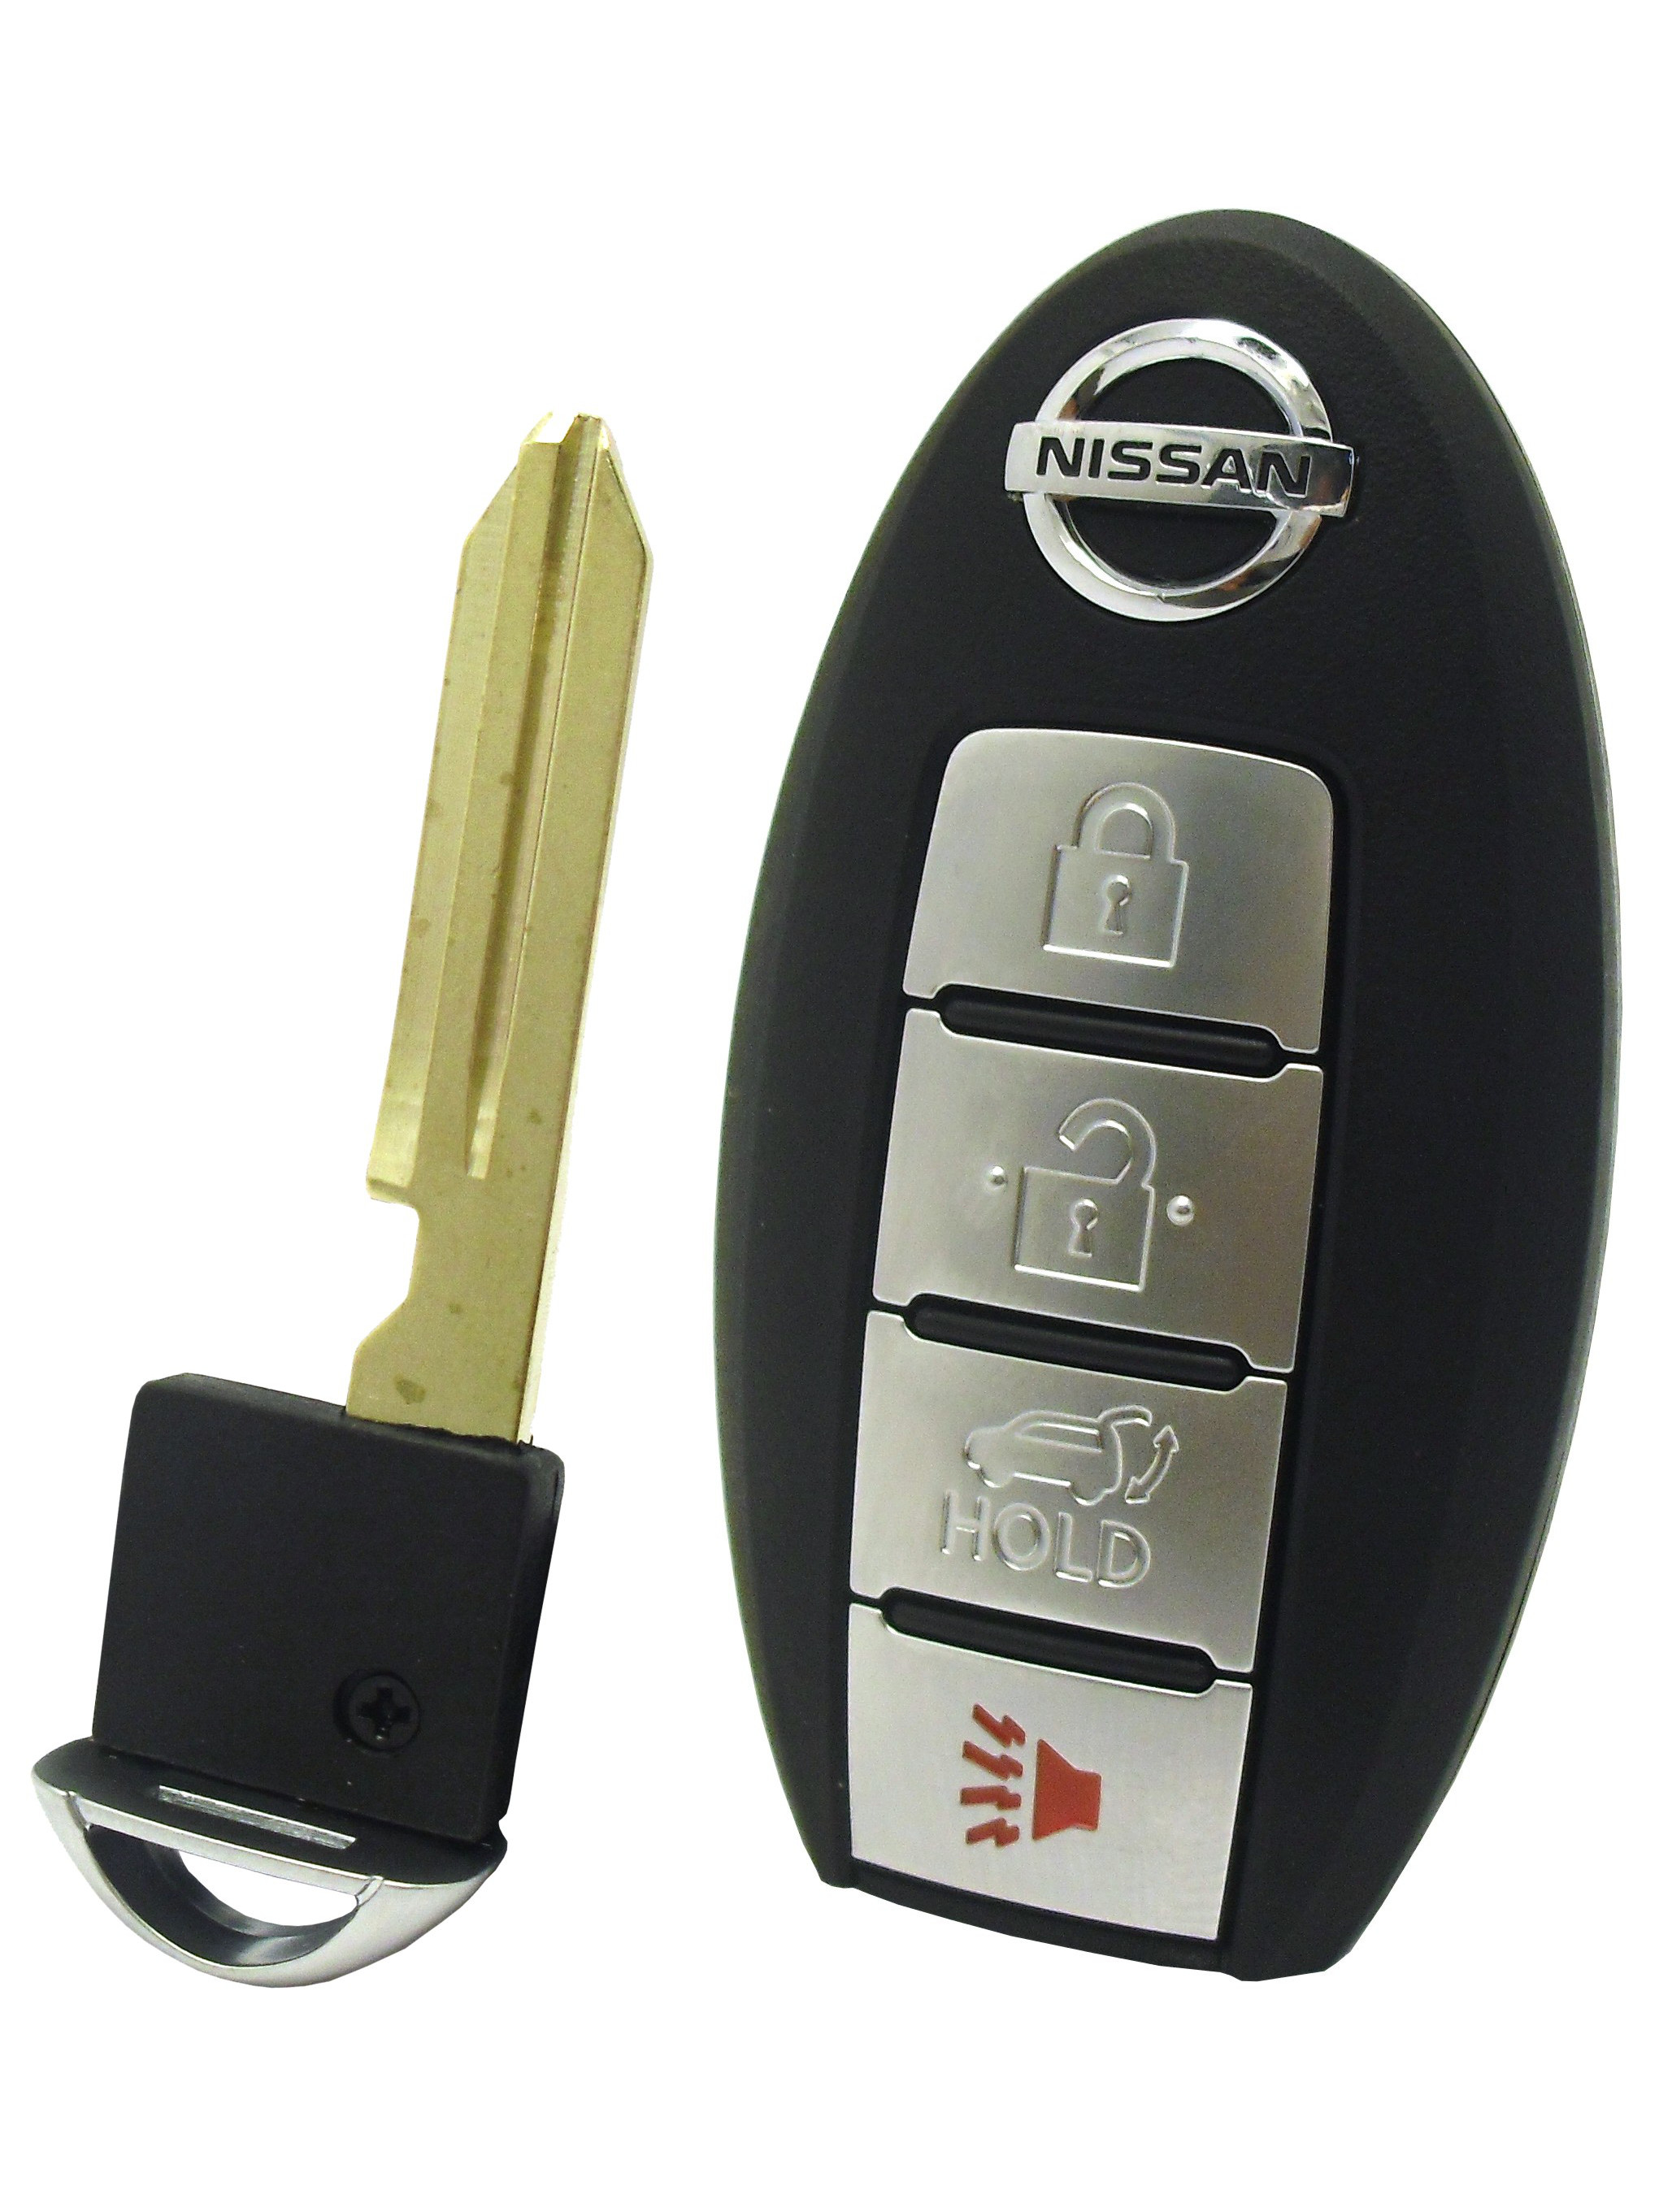 Nissan Remote Entry Smart Key - 4 Button